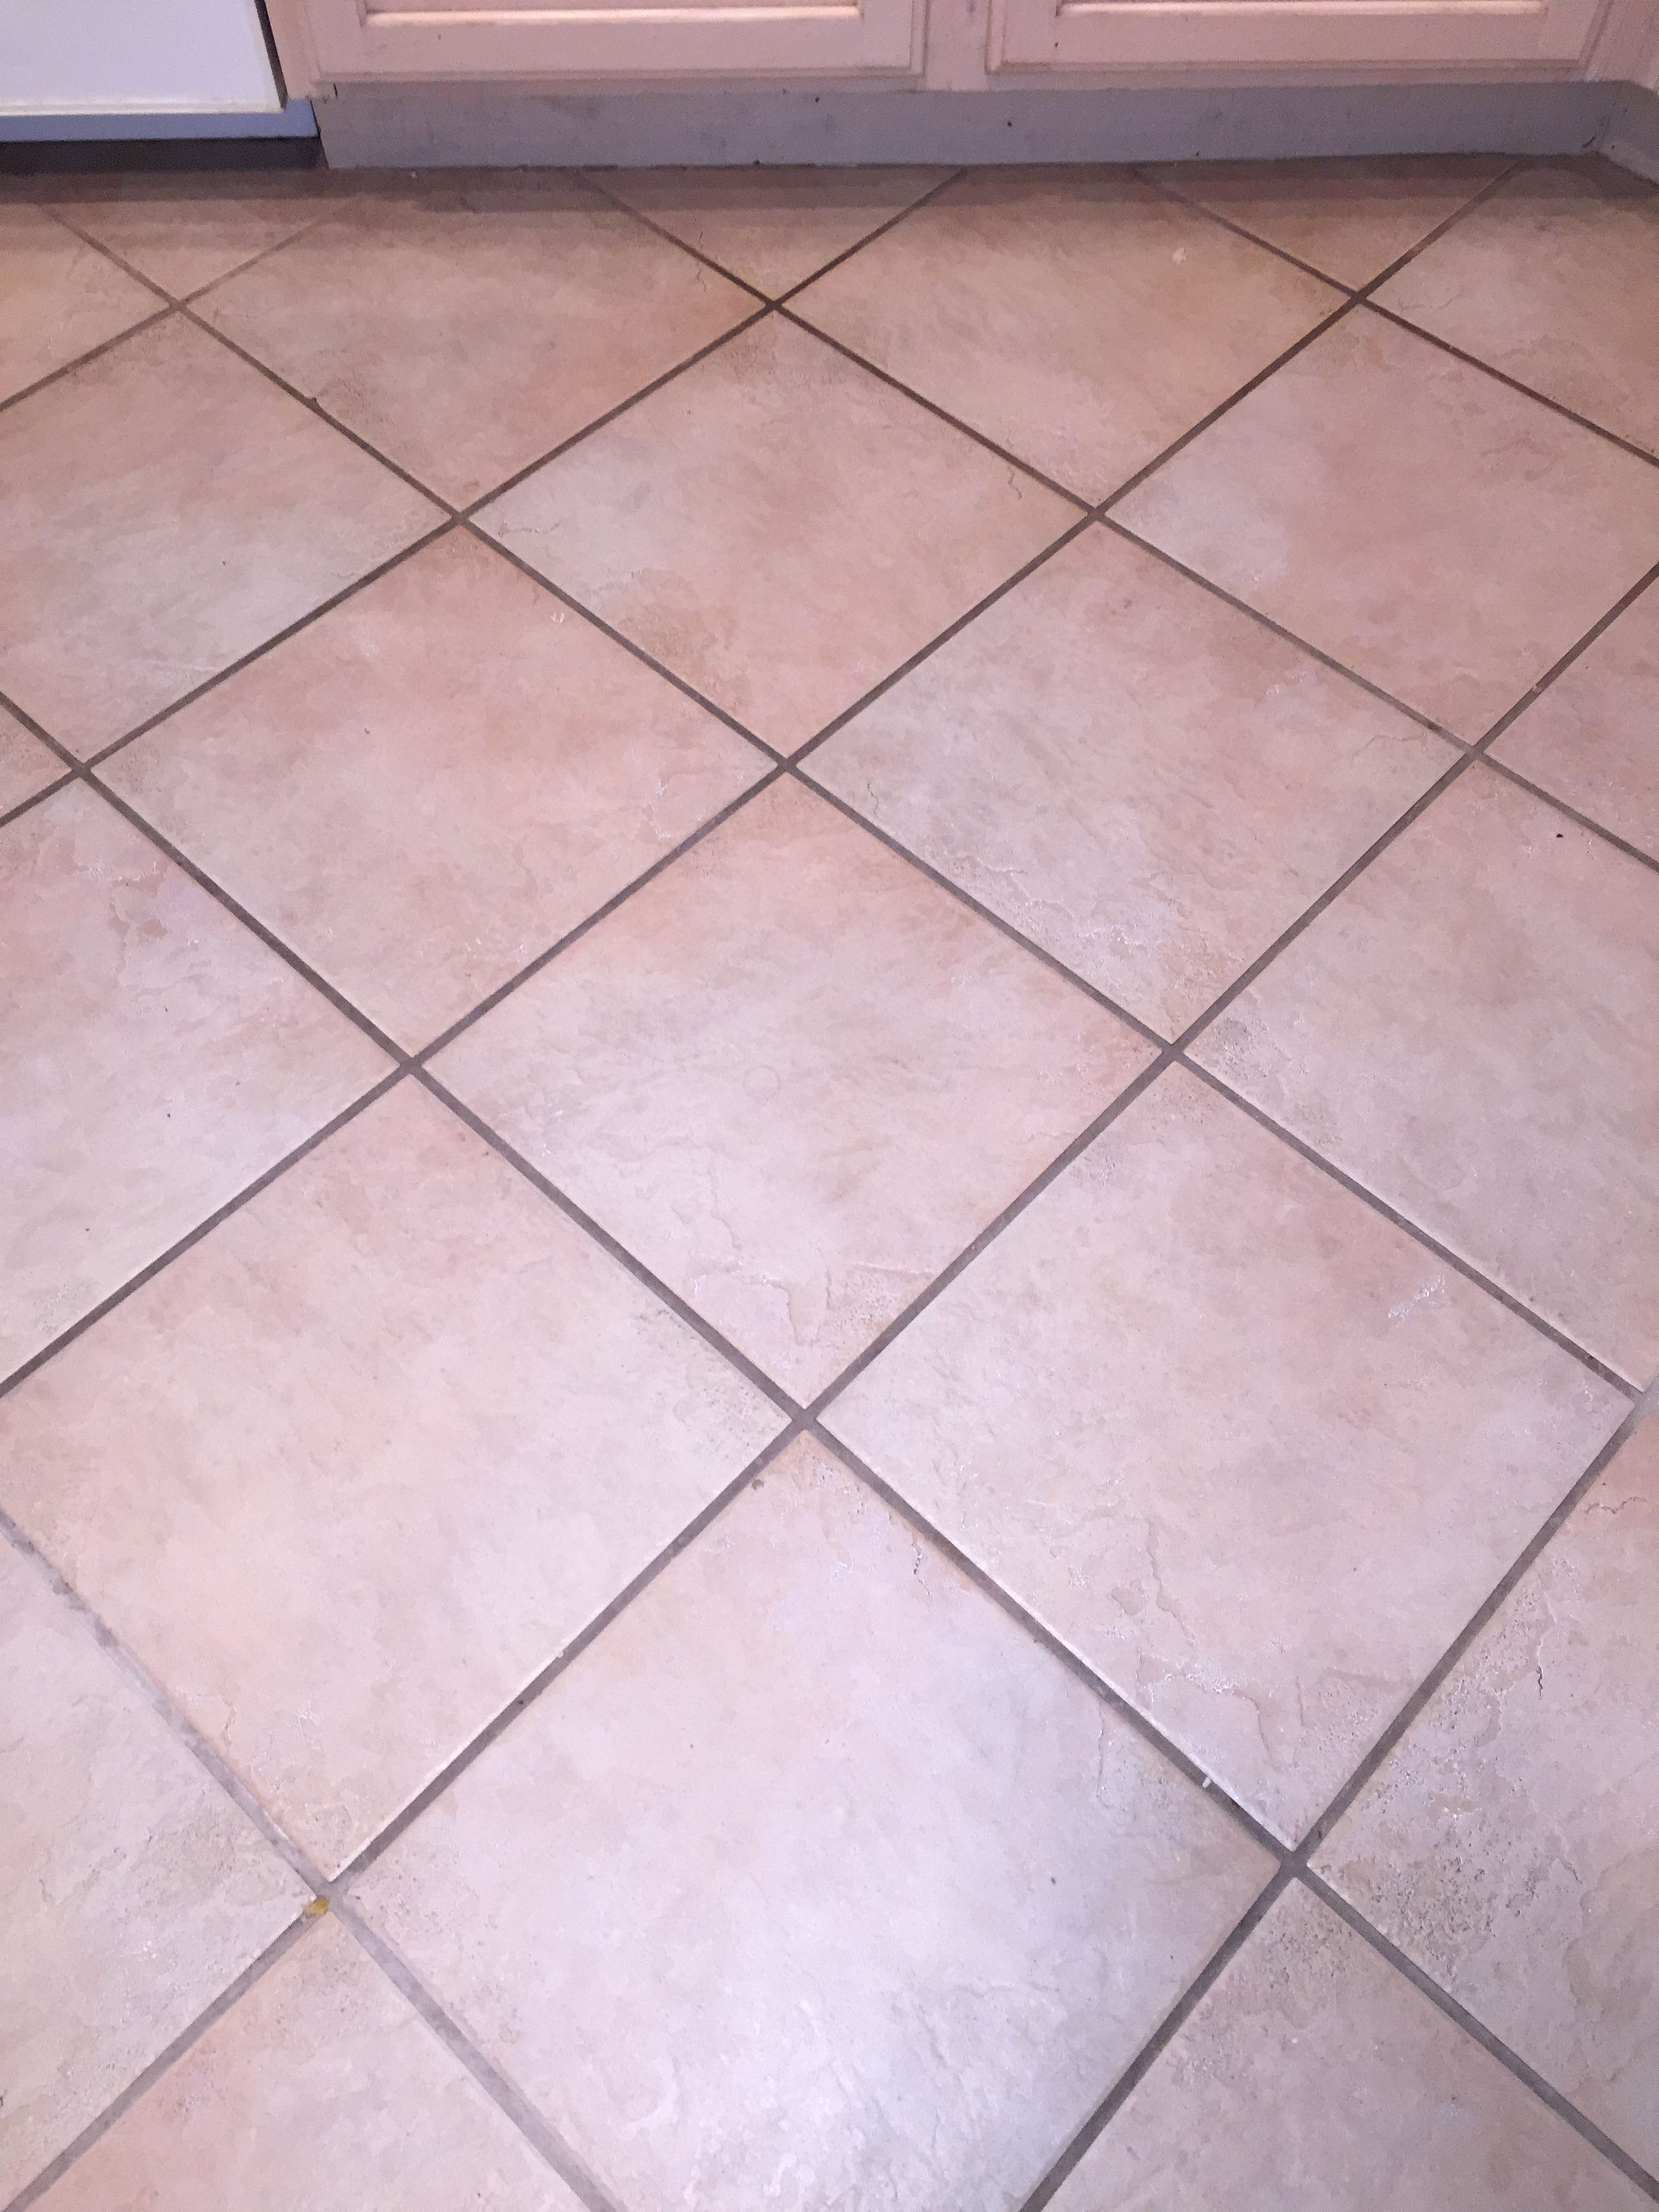 10 Ways Of Home Remedy For Cleaning Bathroom Tile Grout In A Minute Cleaning Bathroom Tiles Grout Cleaner Bathroom Cleaning